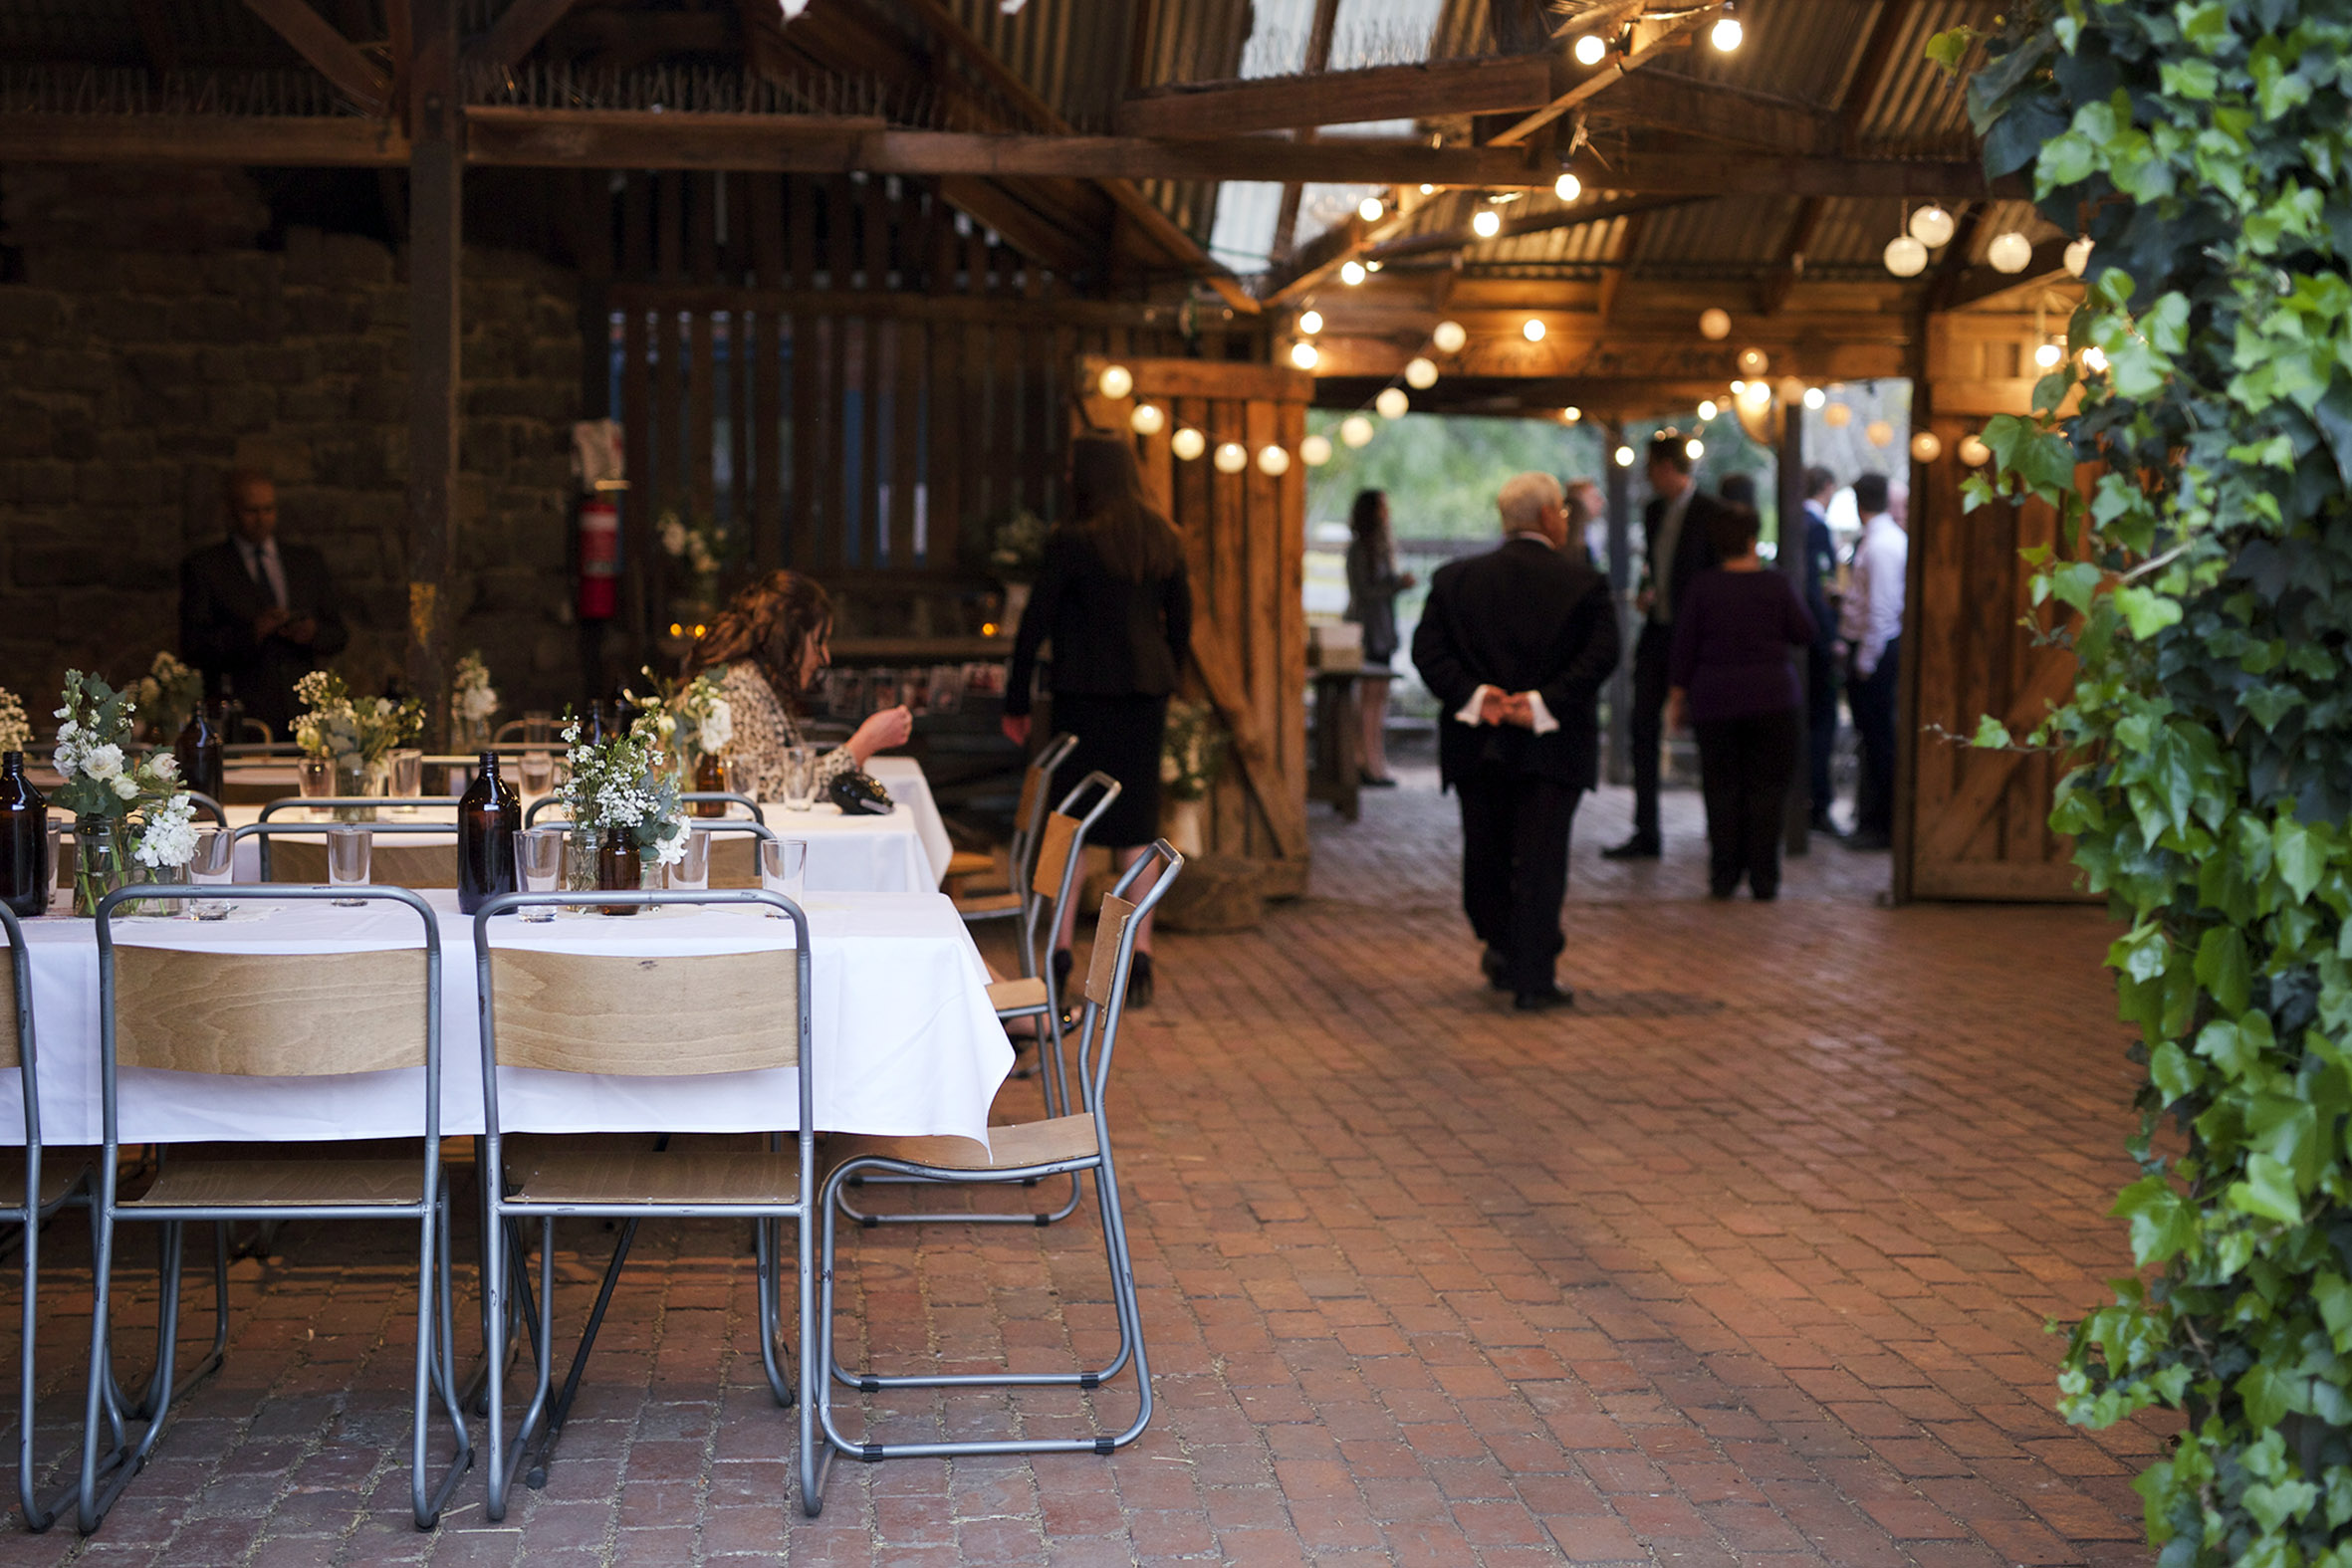 Farm cafe wedding melbourne 26.jpg